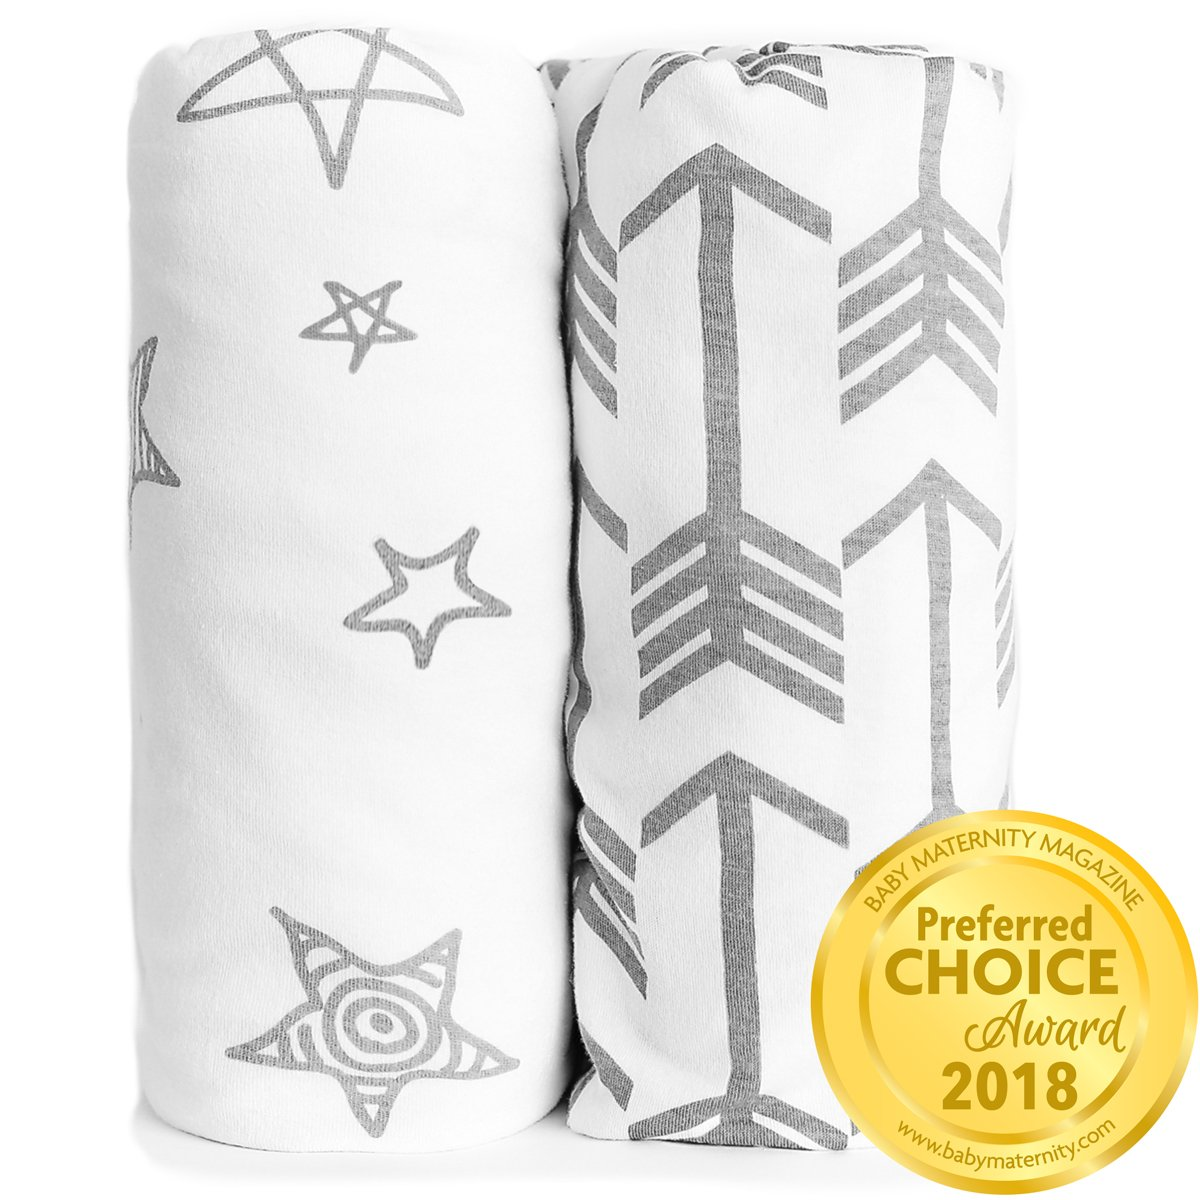 Kids N' Such Fitted Crib Sheet Set - Premium Jersey Knit Cotton - Super Soft - Safe for Babies - Crib Sheets for a Standard Baby or Toddler Mattresses - Baby Shower Gift - Arrow and Stars 2 Pack